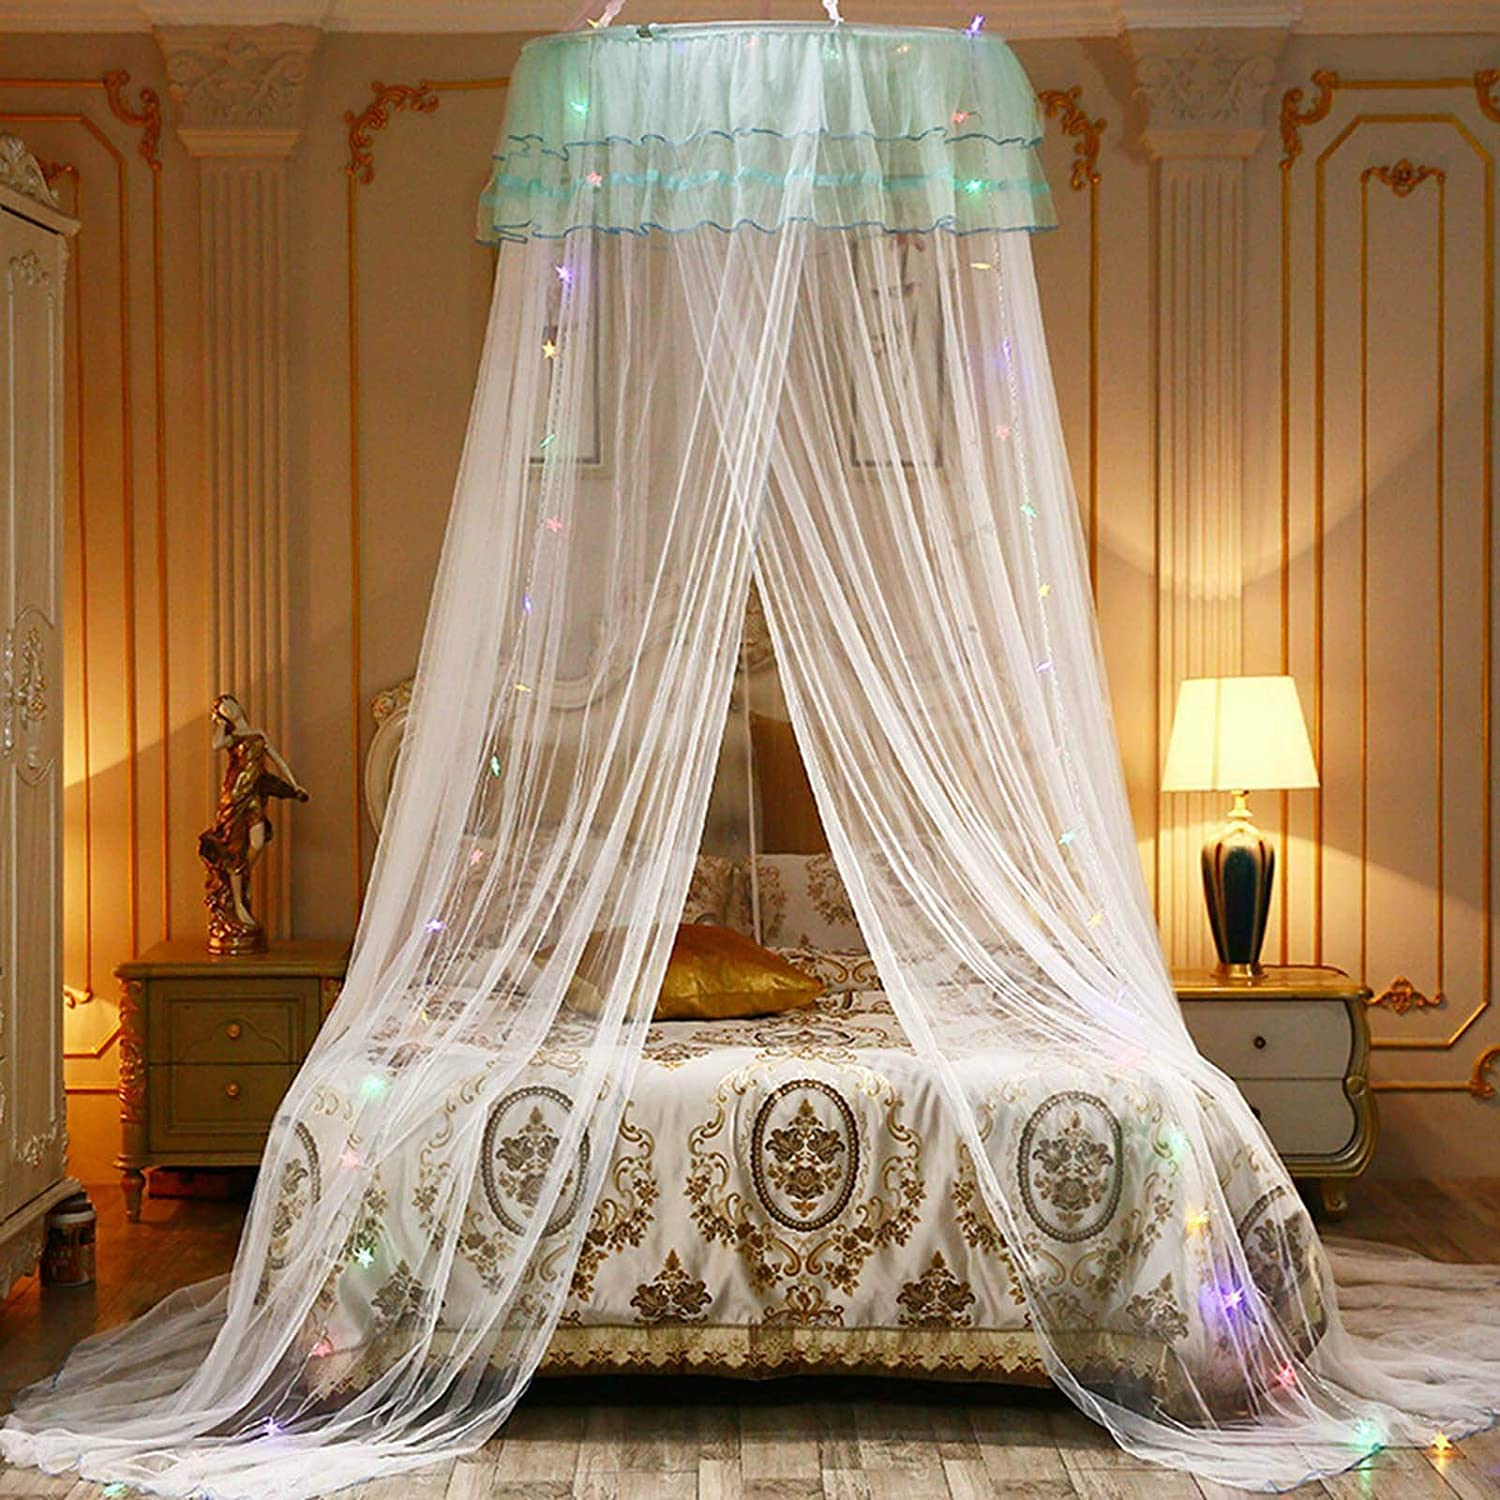 White anmas rucci Bed Canopy Mosquito Net Naturals Bed Canopy Fly Insect Protection Indoor//Outdoor Decorative Height 260cm//102.3in